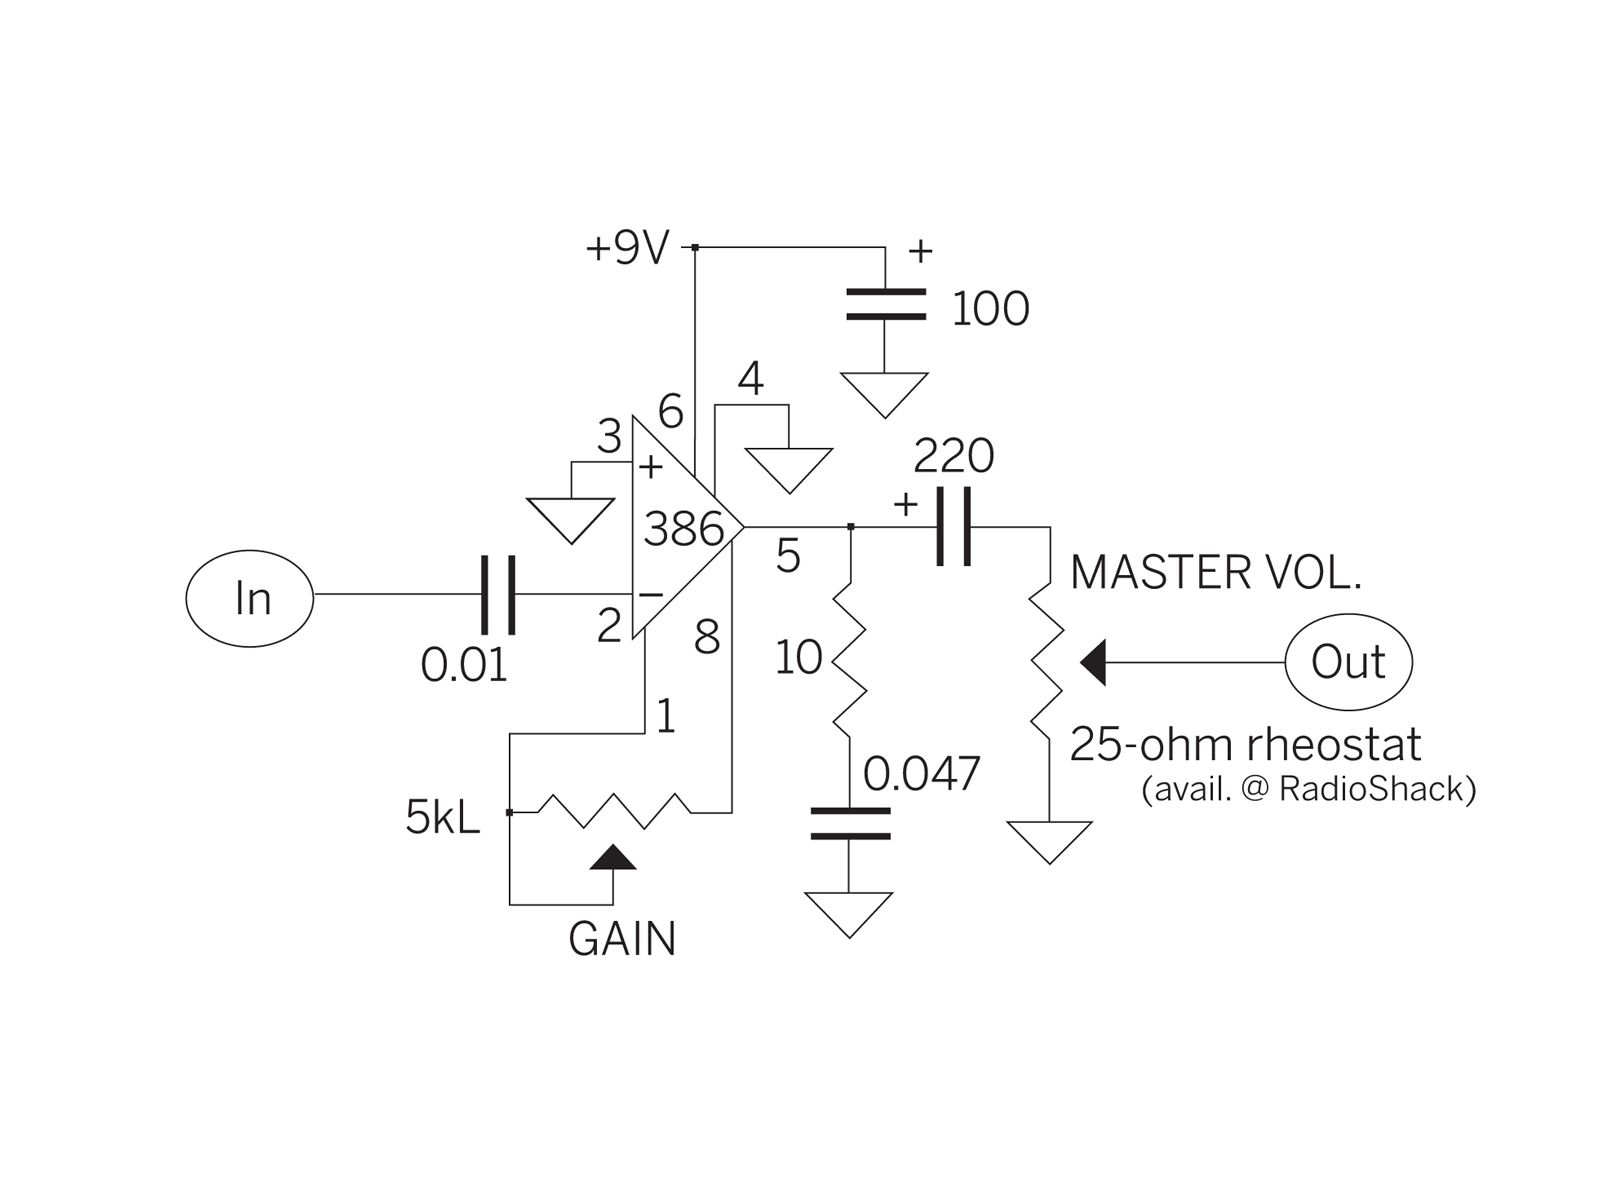 The $5 Cracker Box Amp Crackers And Electronic Schematics Cigar Box Amp Kit House Amplifier Wiring Diagram 5 Channel Amplifier Wiring Diagram At IT-Energia.com